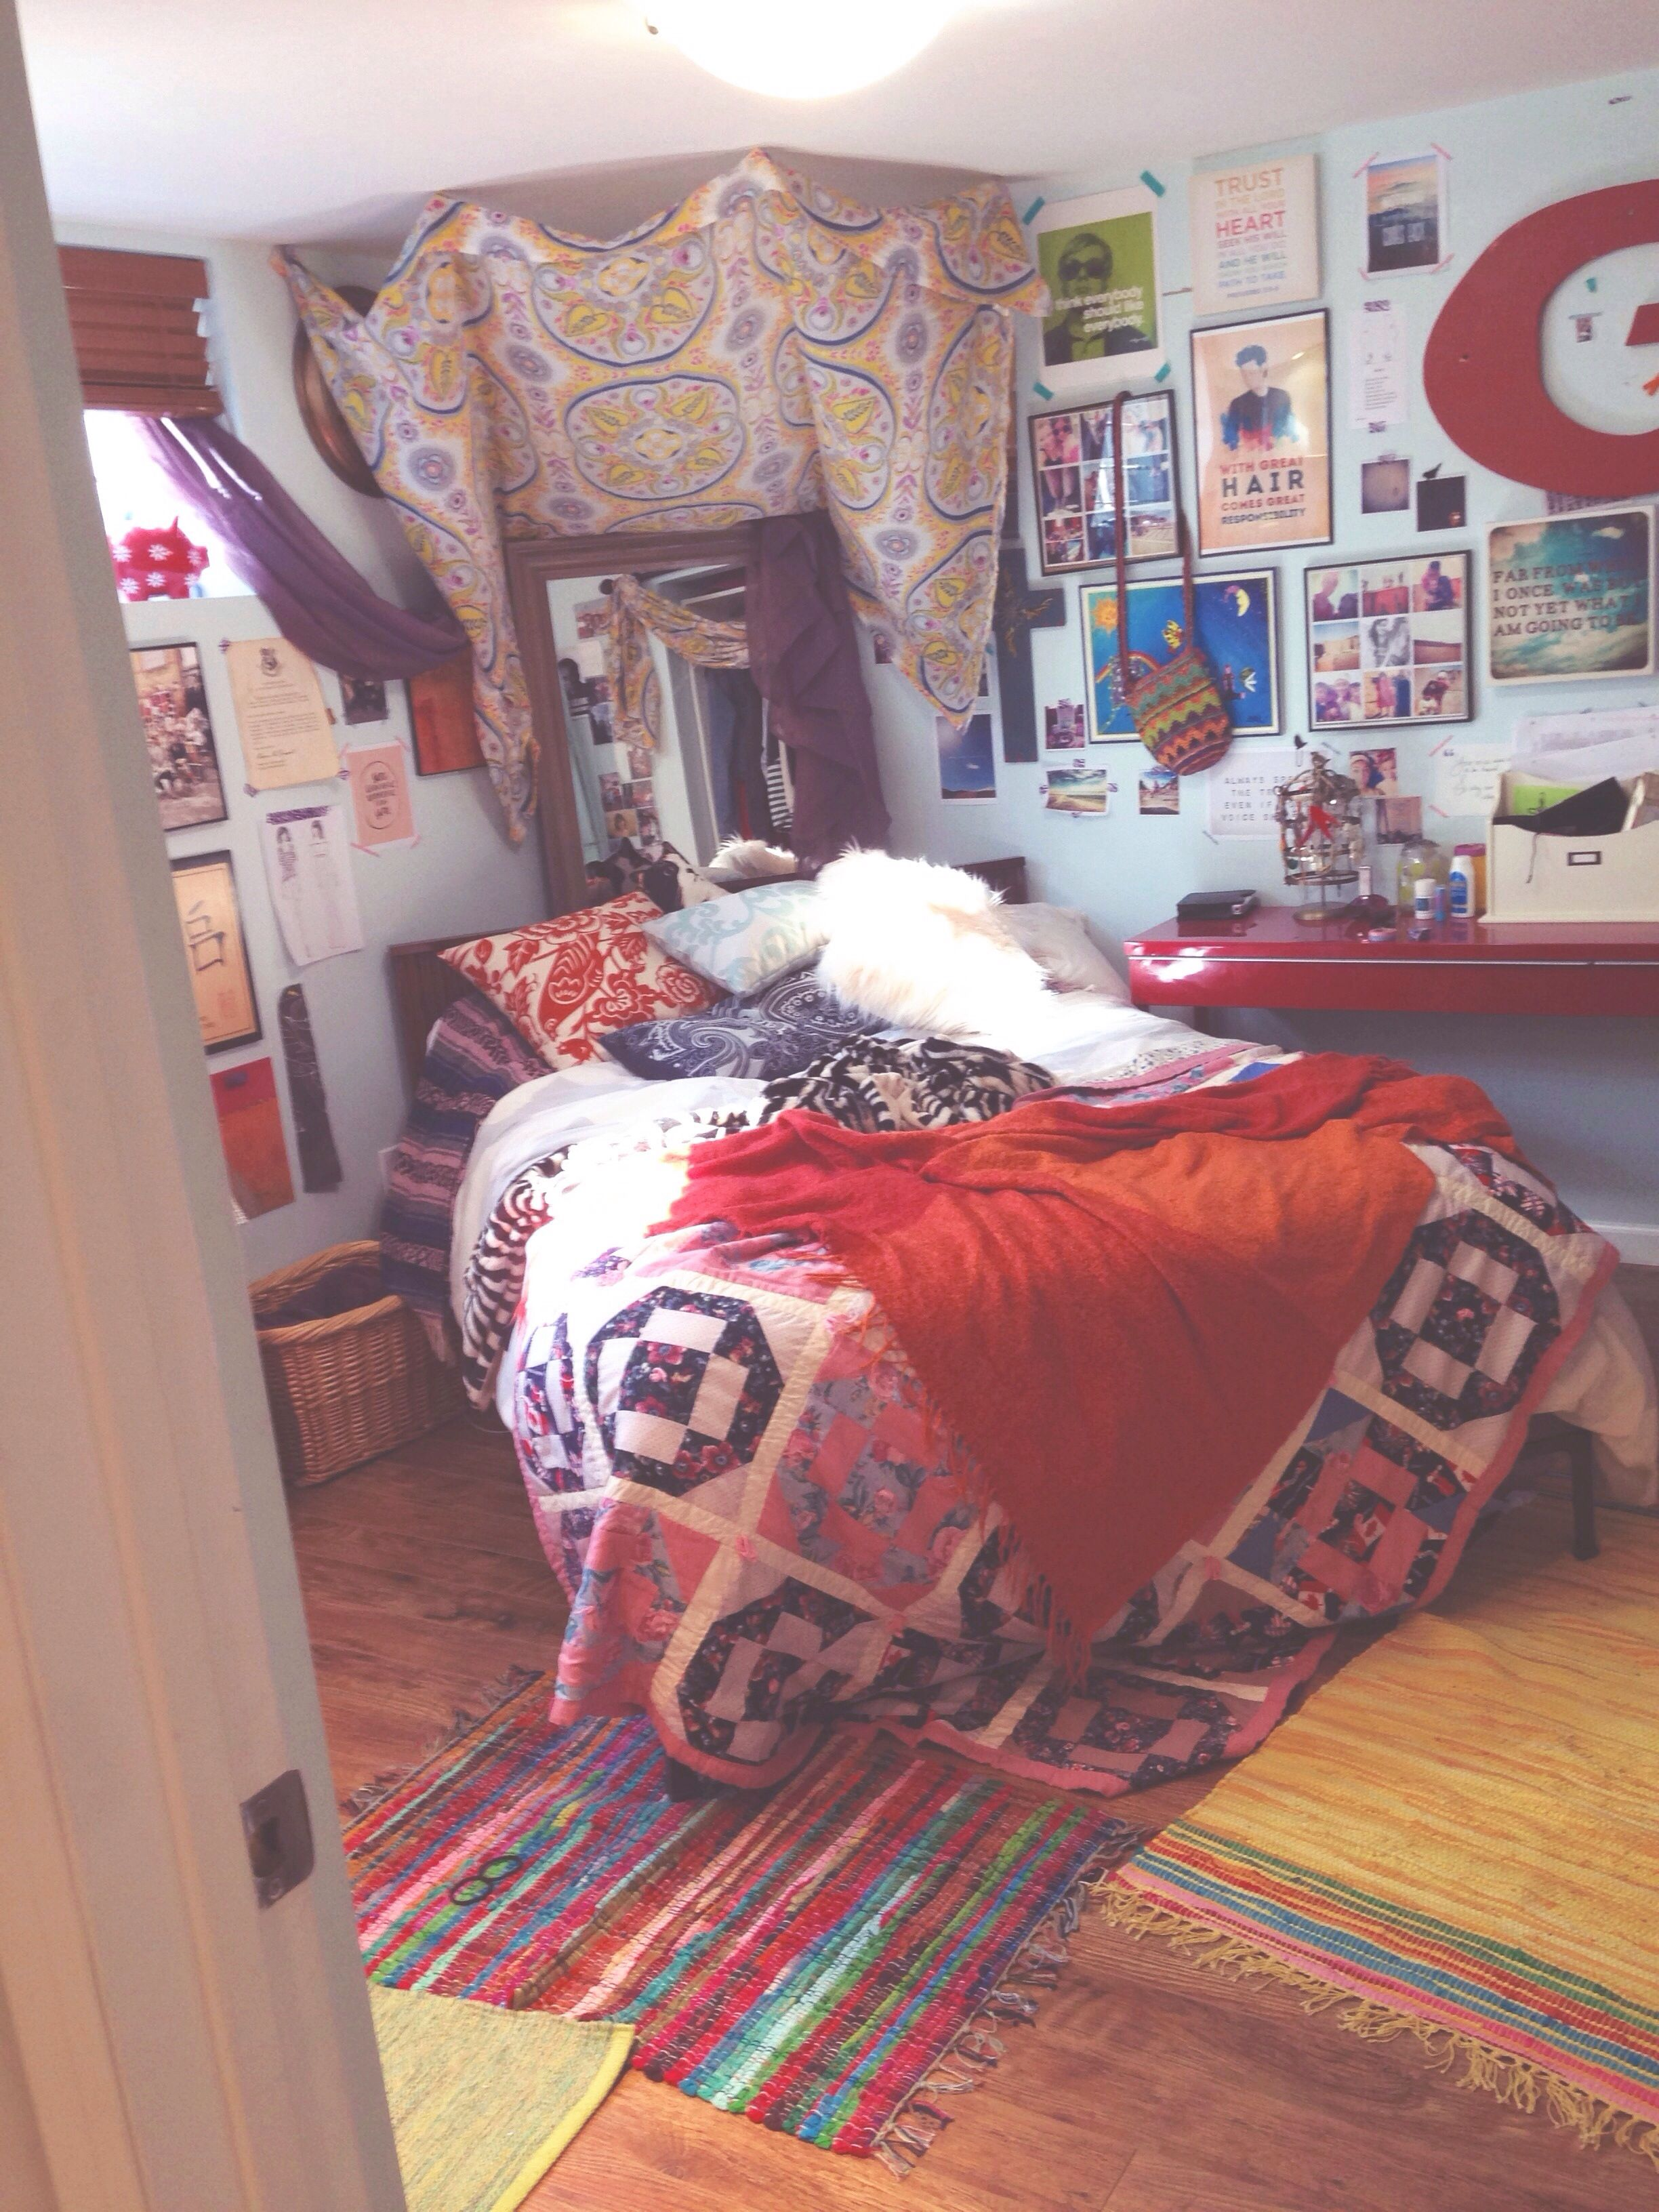 Boho Chic Bedroom Decor, Gypsy Chic Decorating. Tumblr Inspired Bedroom.  Colourful Bedroom. Lots Of Pillows And Blankets.